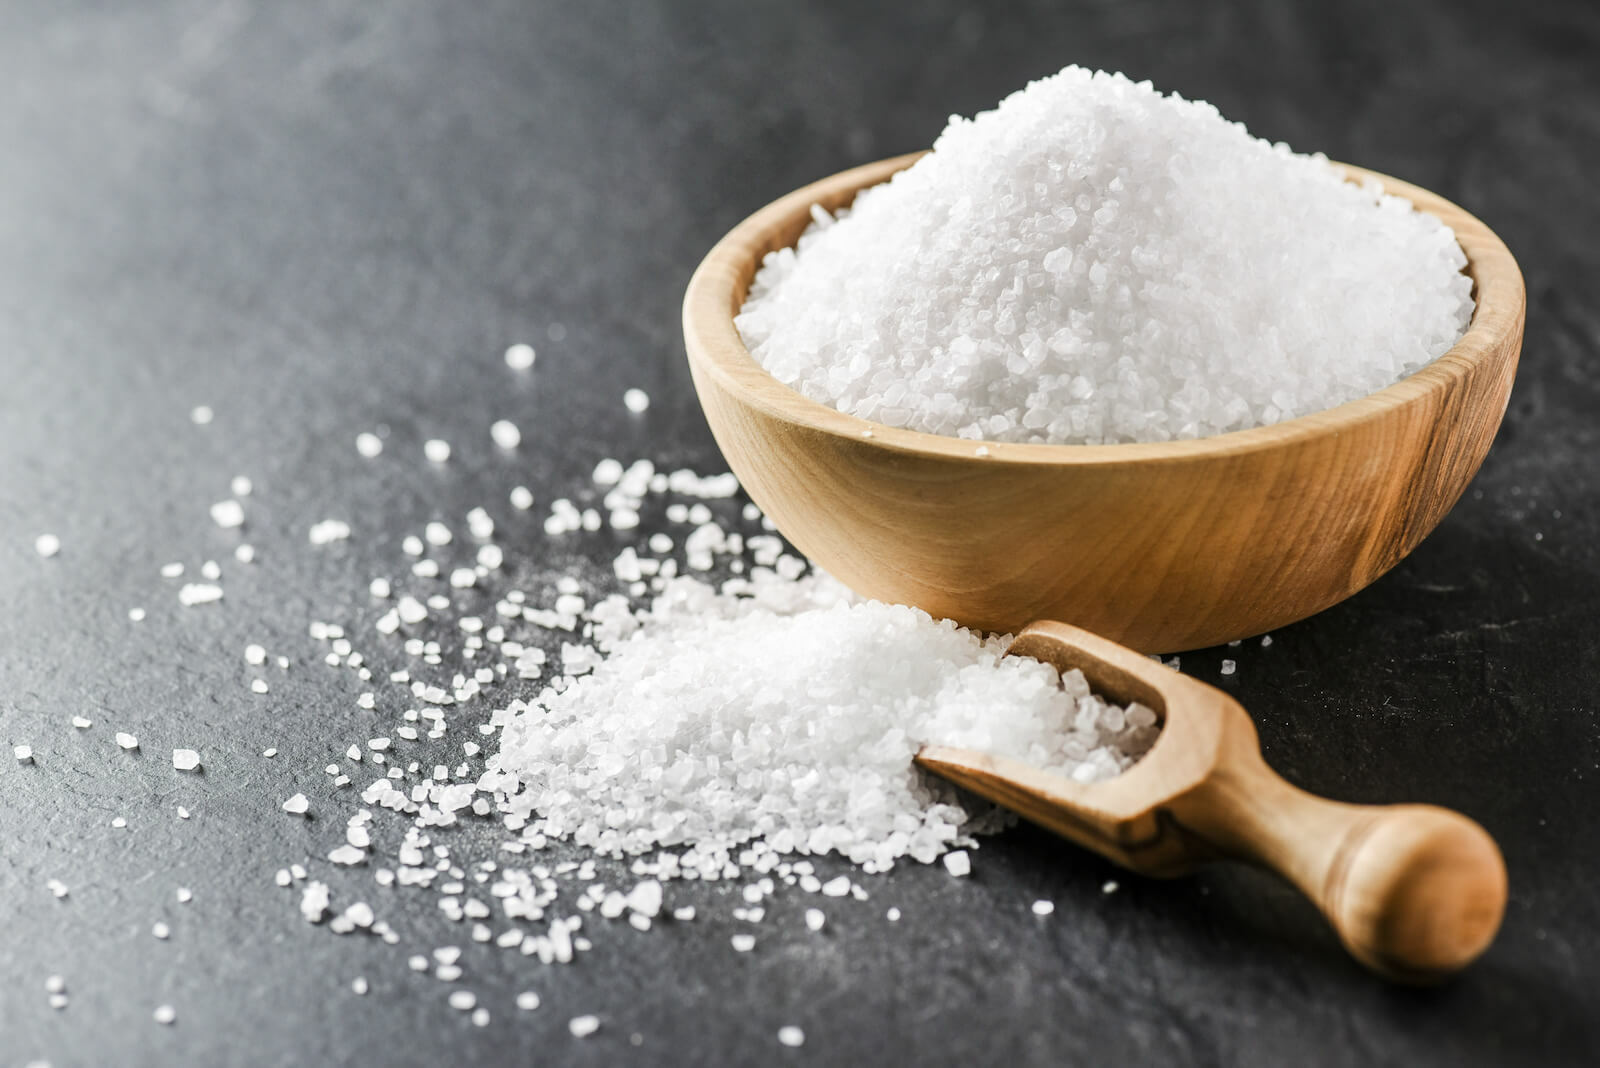 Electrolytes benefits: sea salt in a wooden spoon and bowl